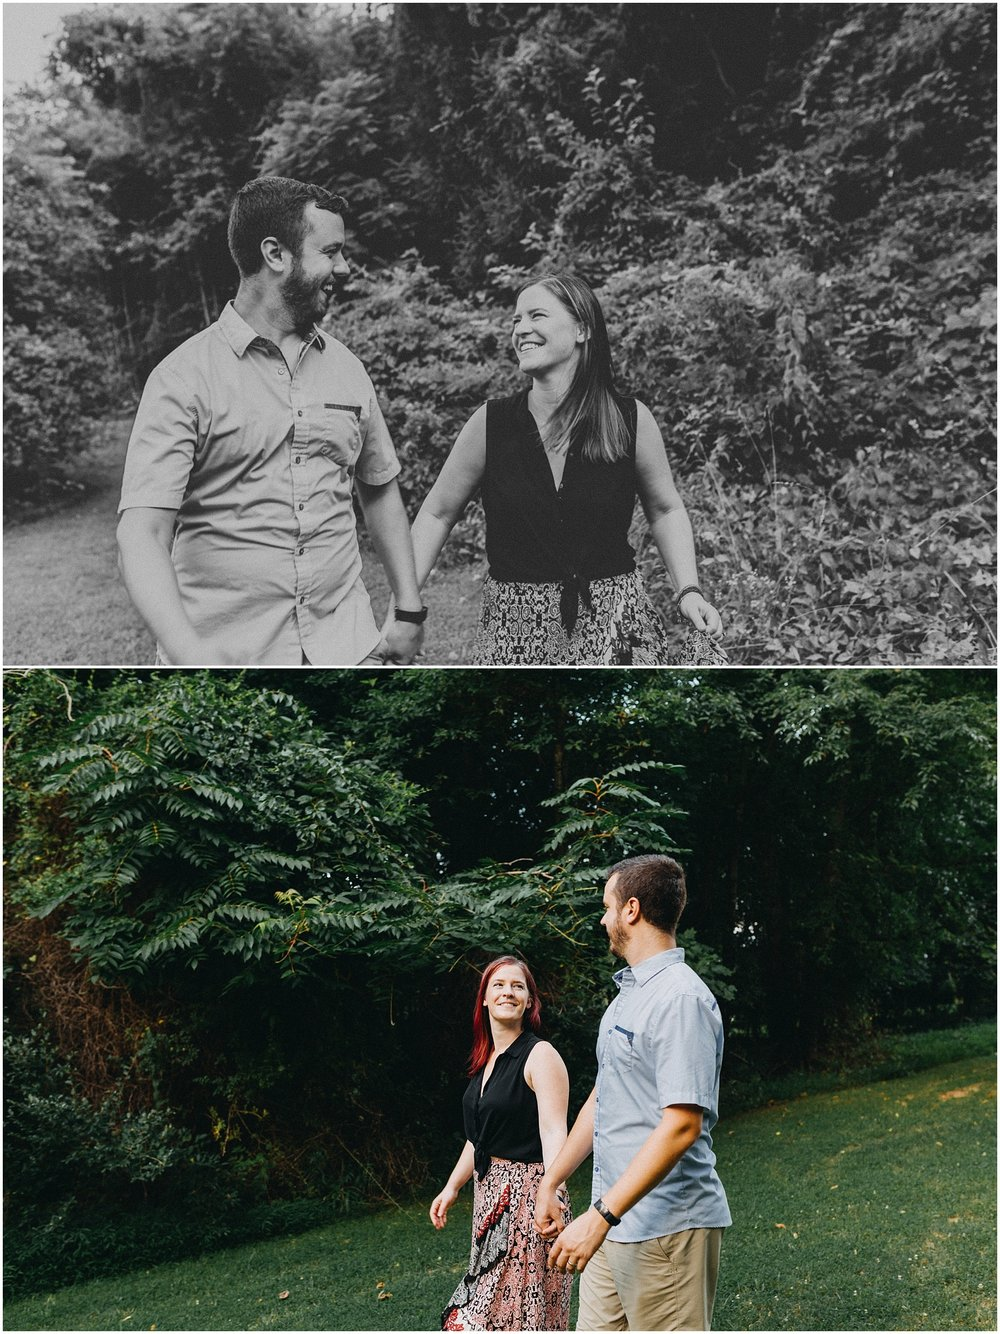 lifestyle-anniversary-engagement-photo session-rv-camping-road trip-vintage trailer-camping-outdoor photos_0274.jpg